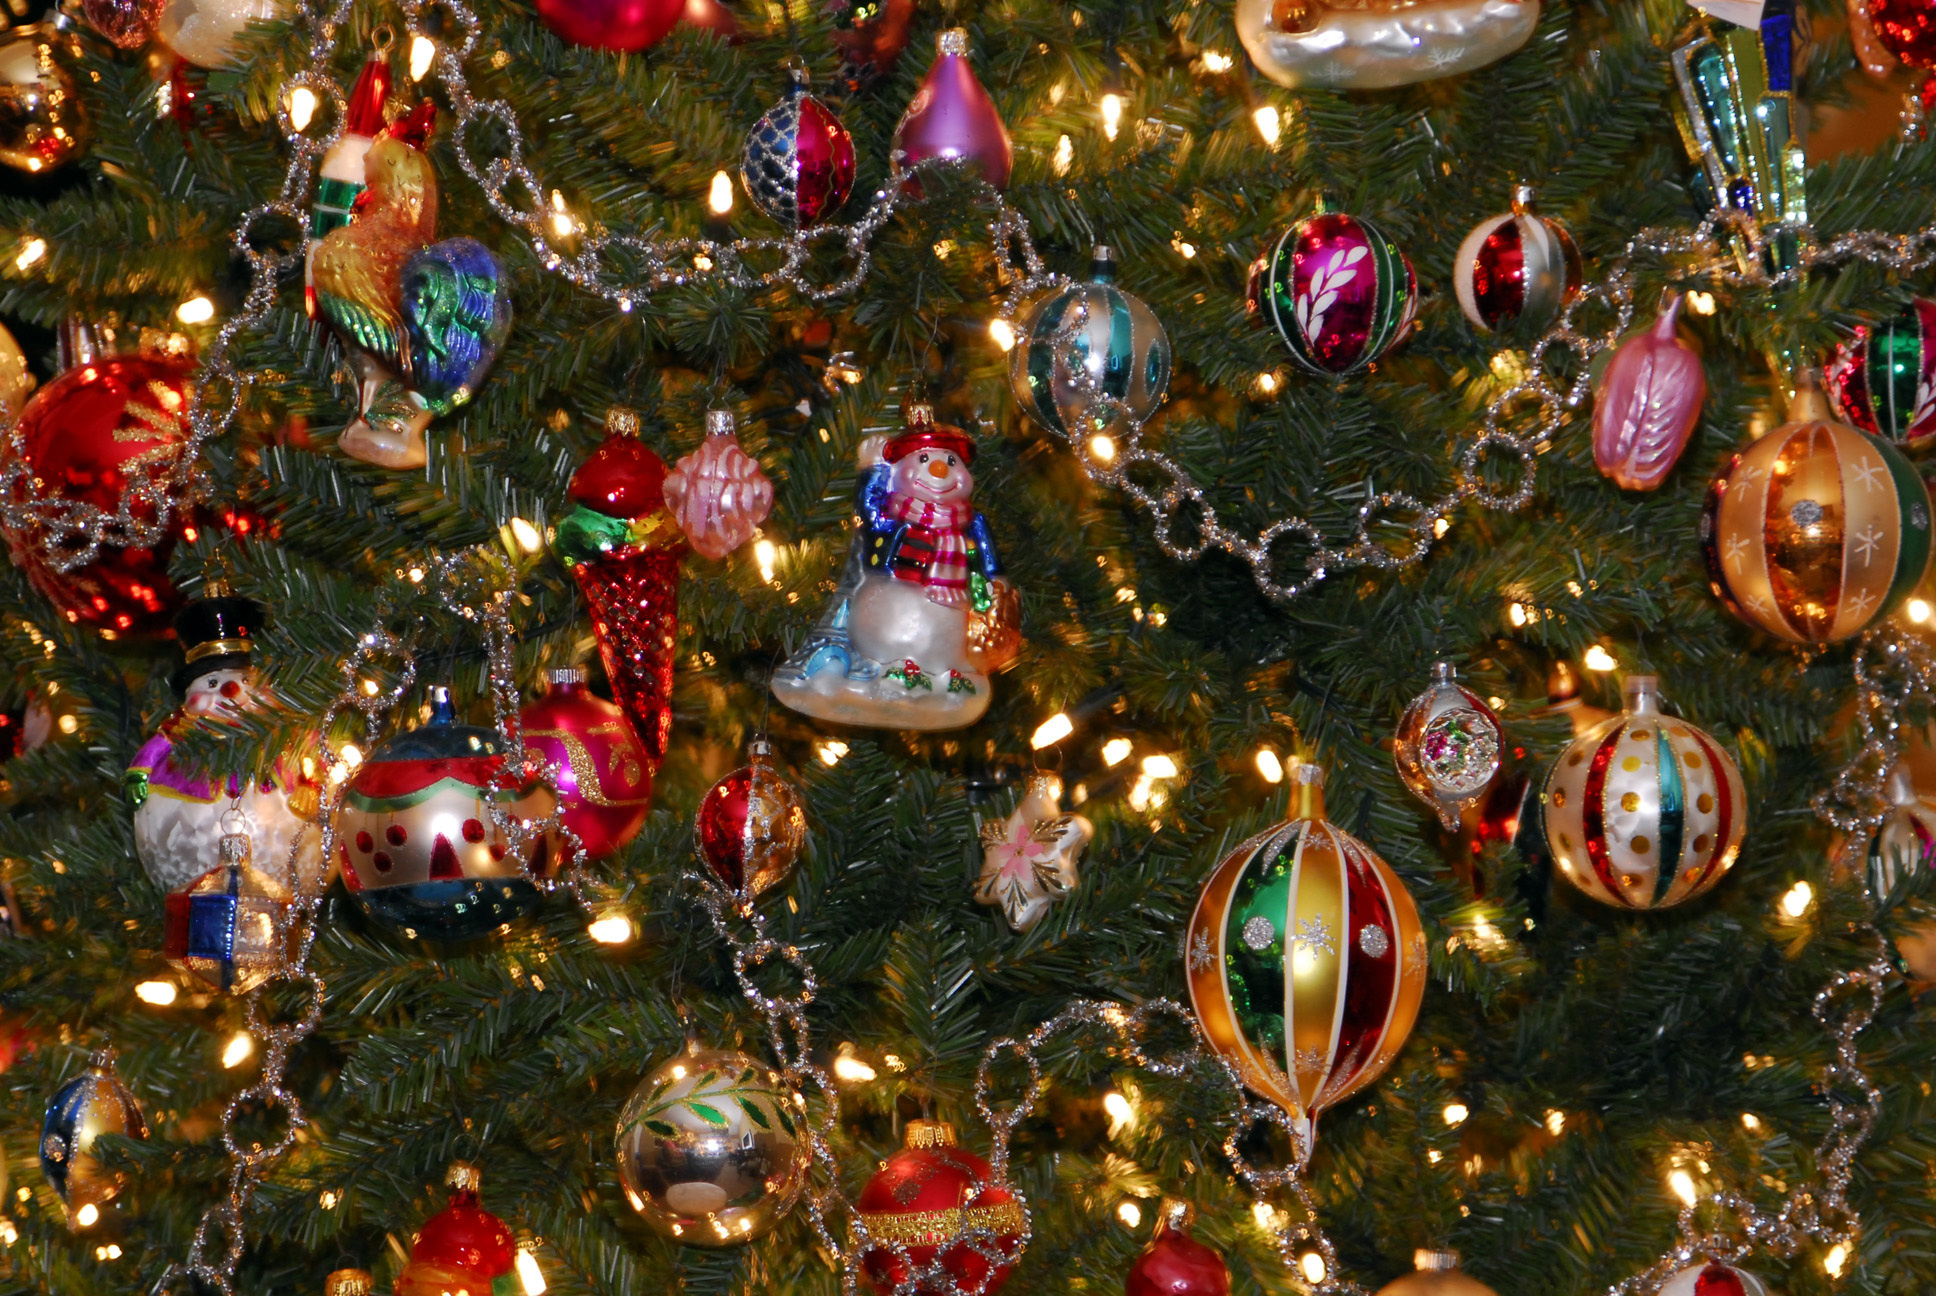 Christmas Tree Ornaments: christmas tree ornaments ideas